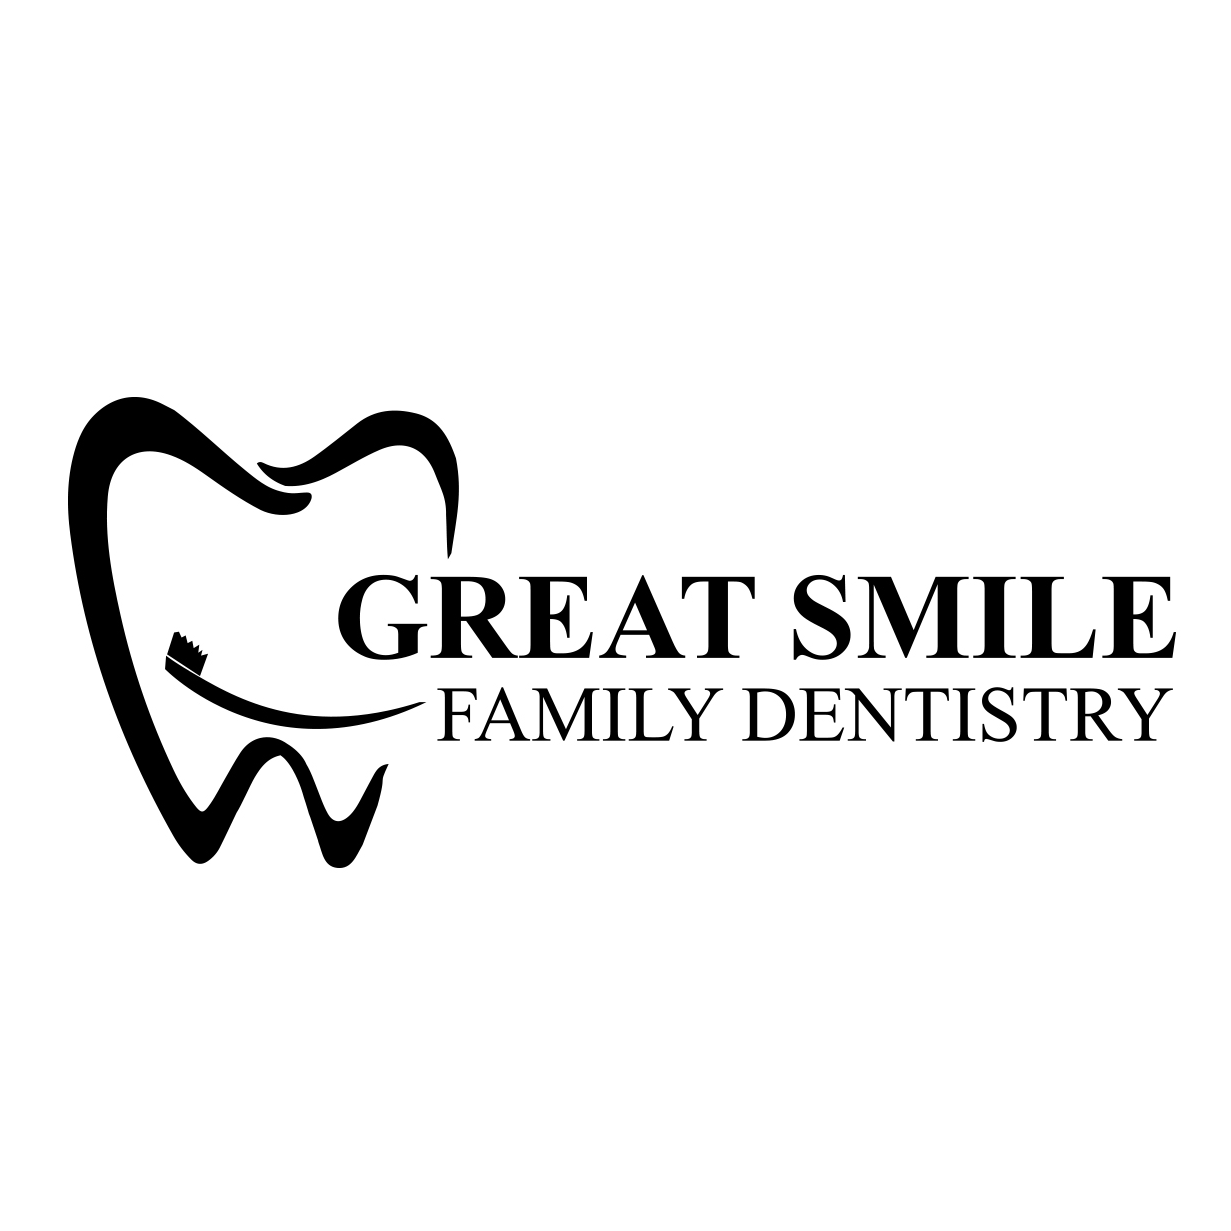 Great Smile Family Dentistry